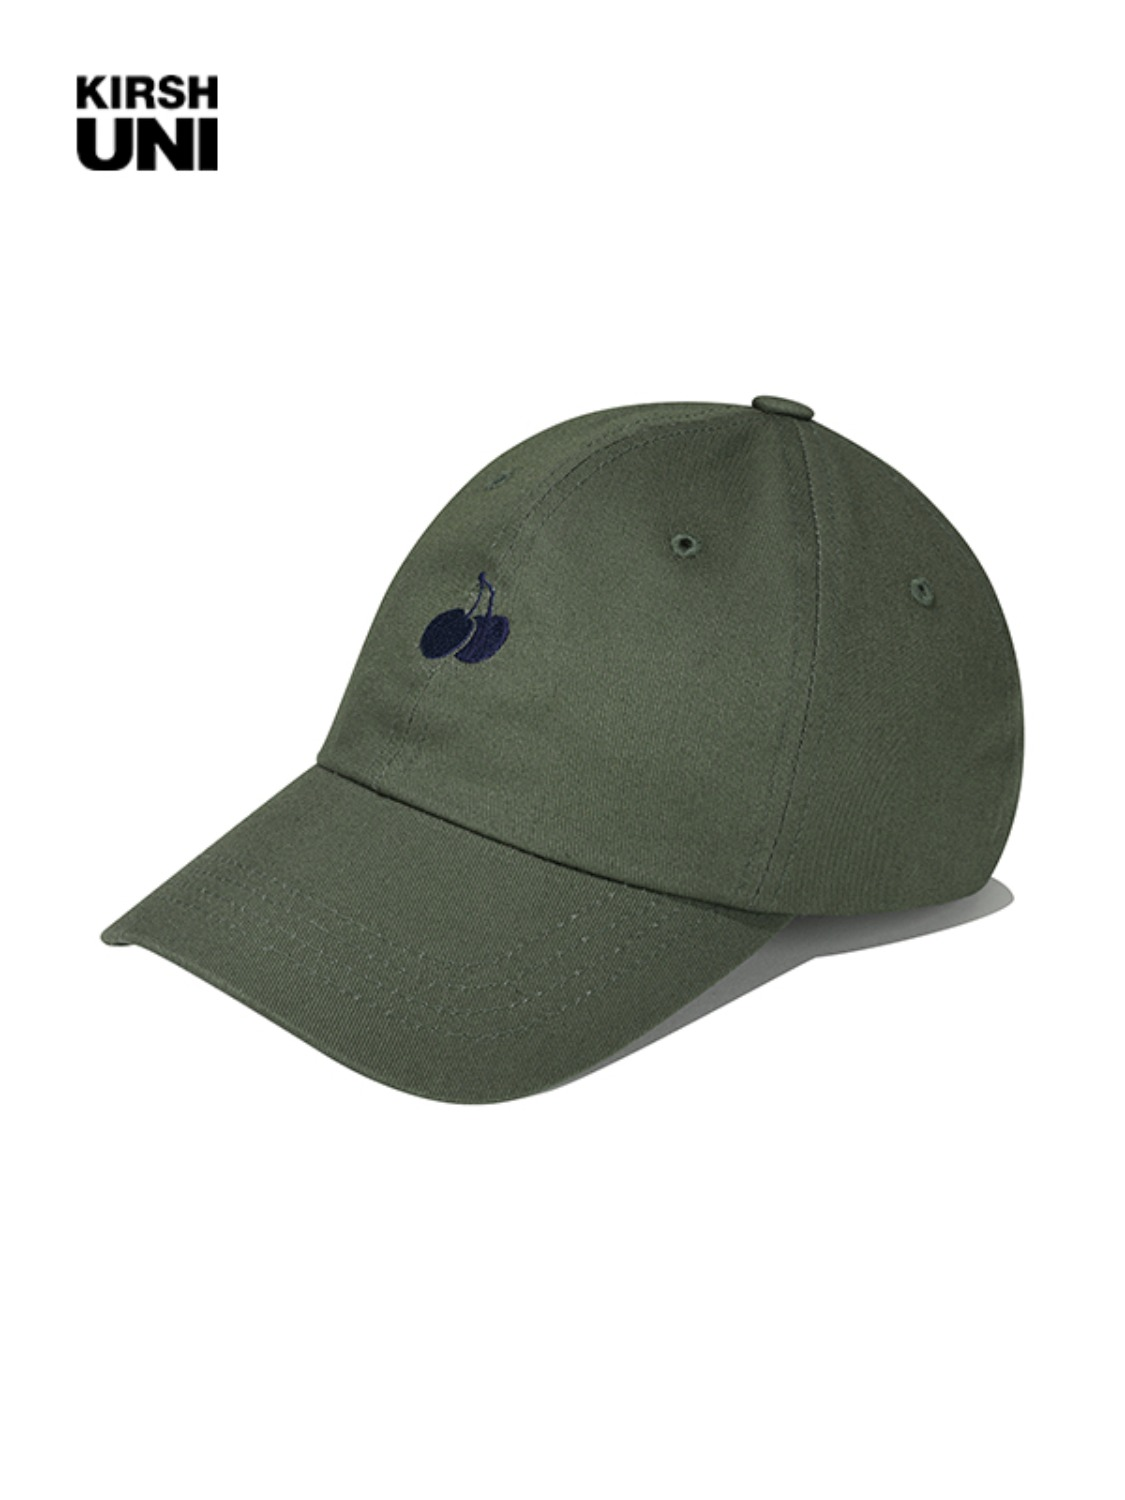 (2월 5일 예약발송)UNI SMALL CHERRY LOGO BALLCAP KS [KHAKI]